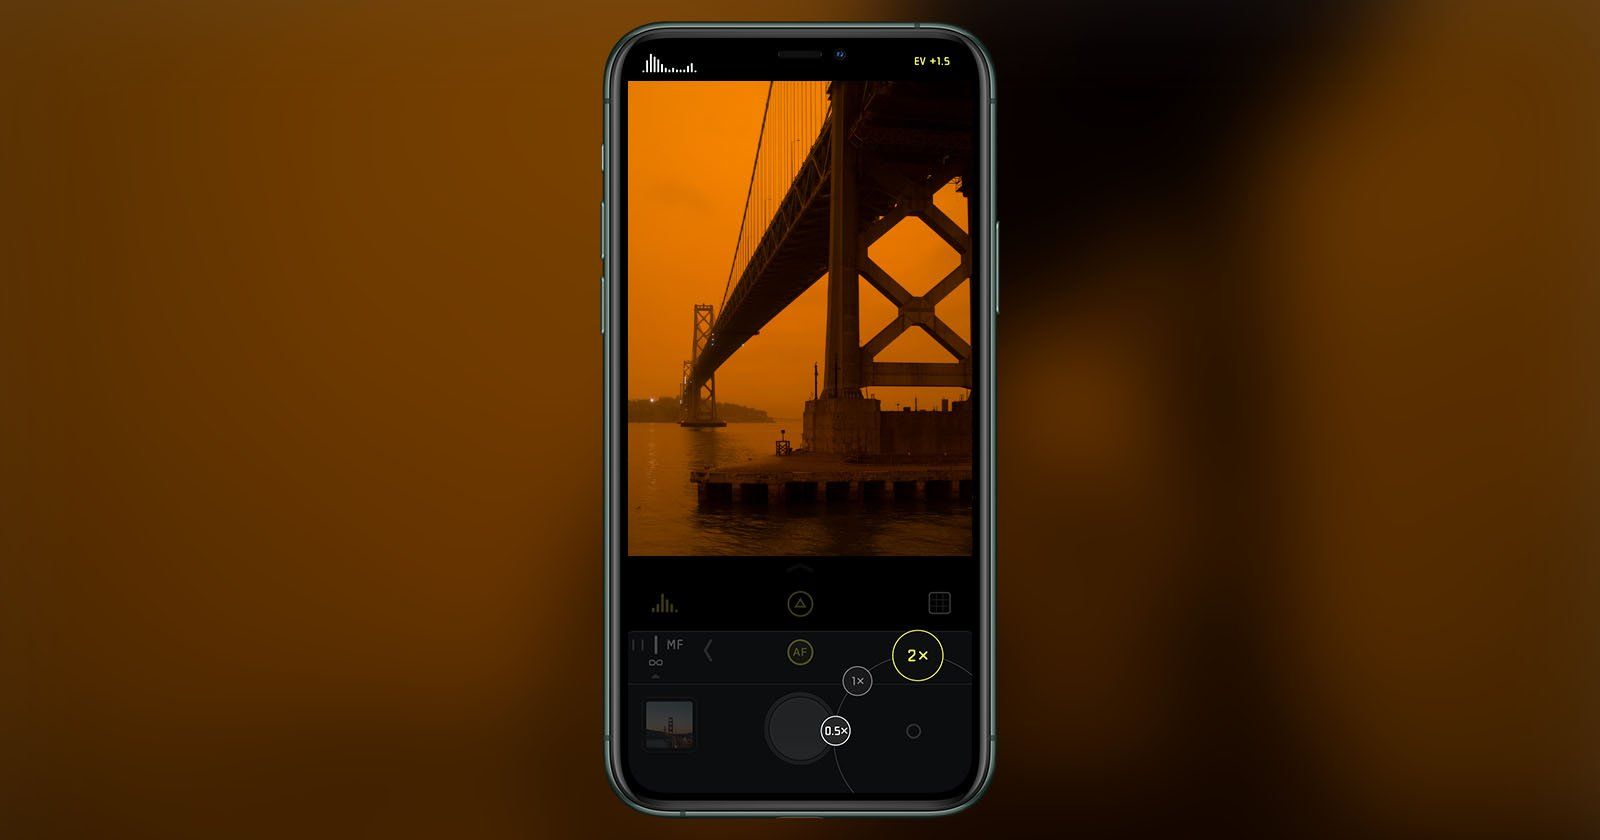 Halide Camera App Sees Big Spike for Wildfire Sky Photos, Donates Sales